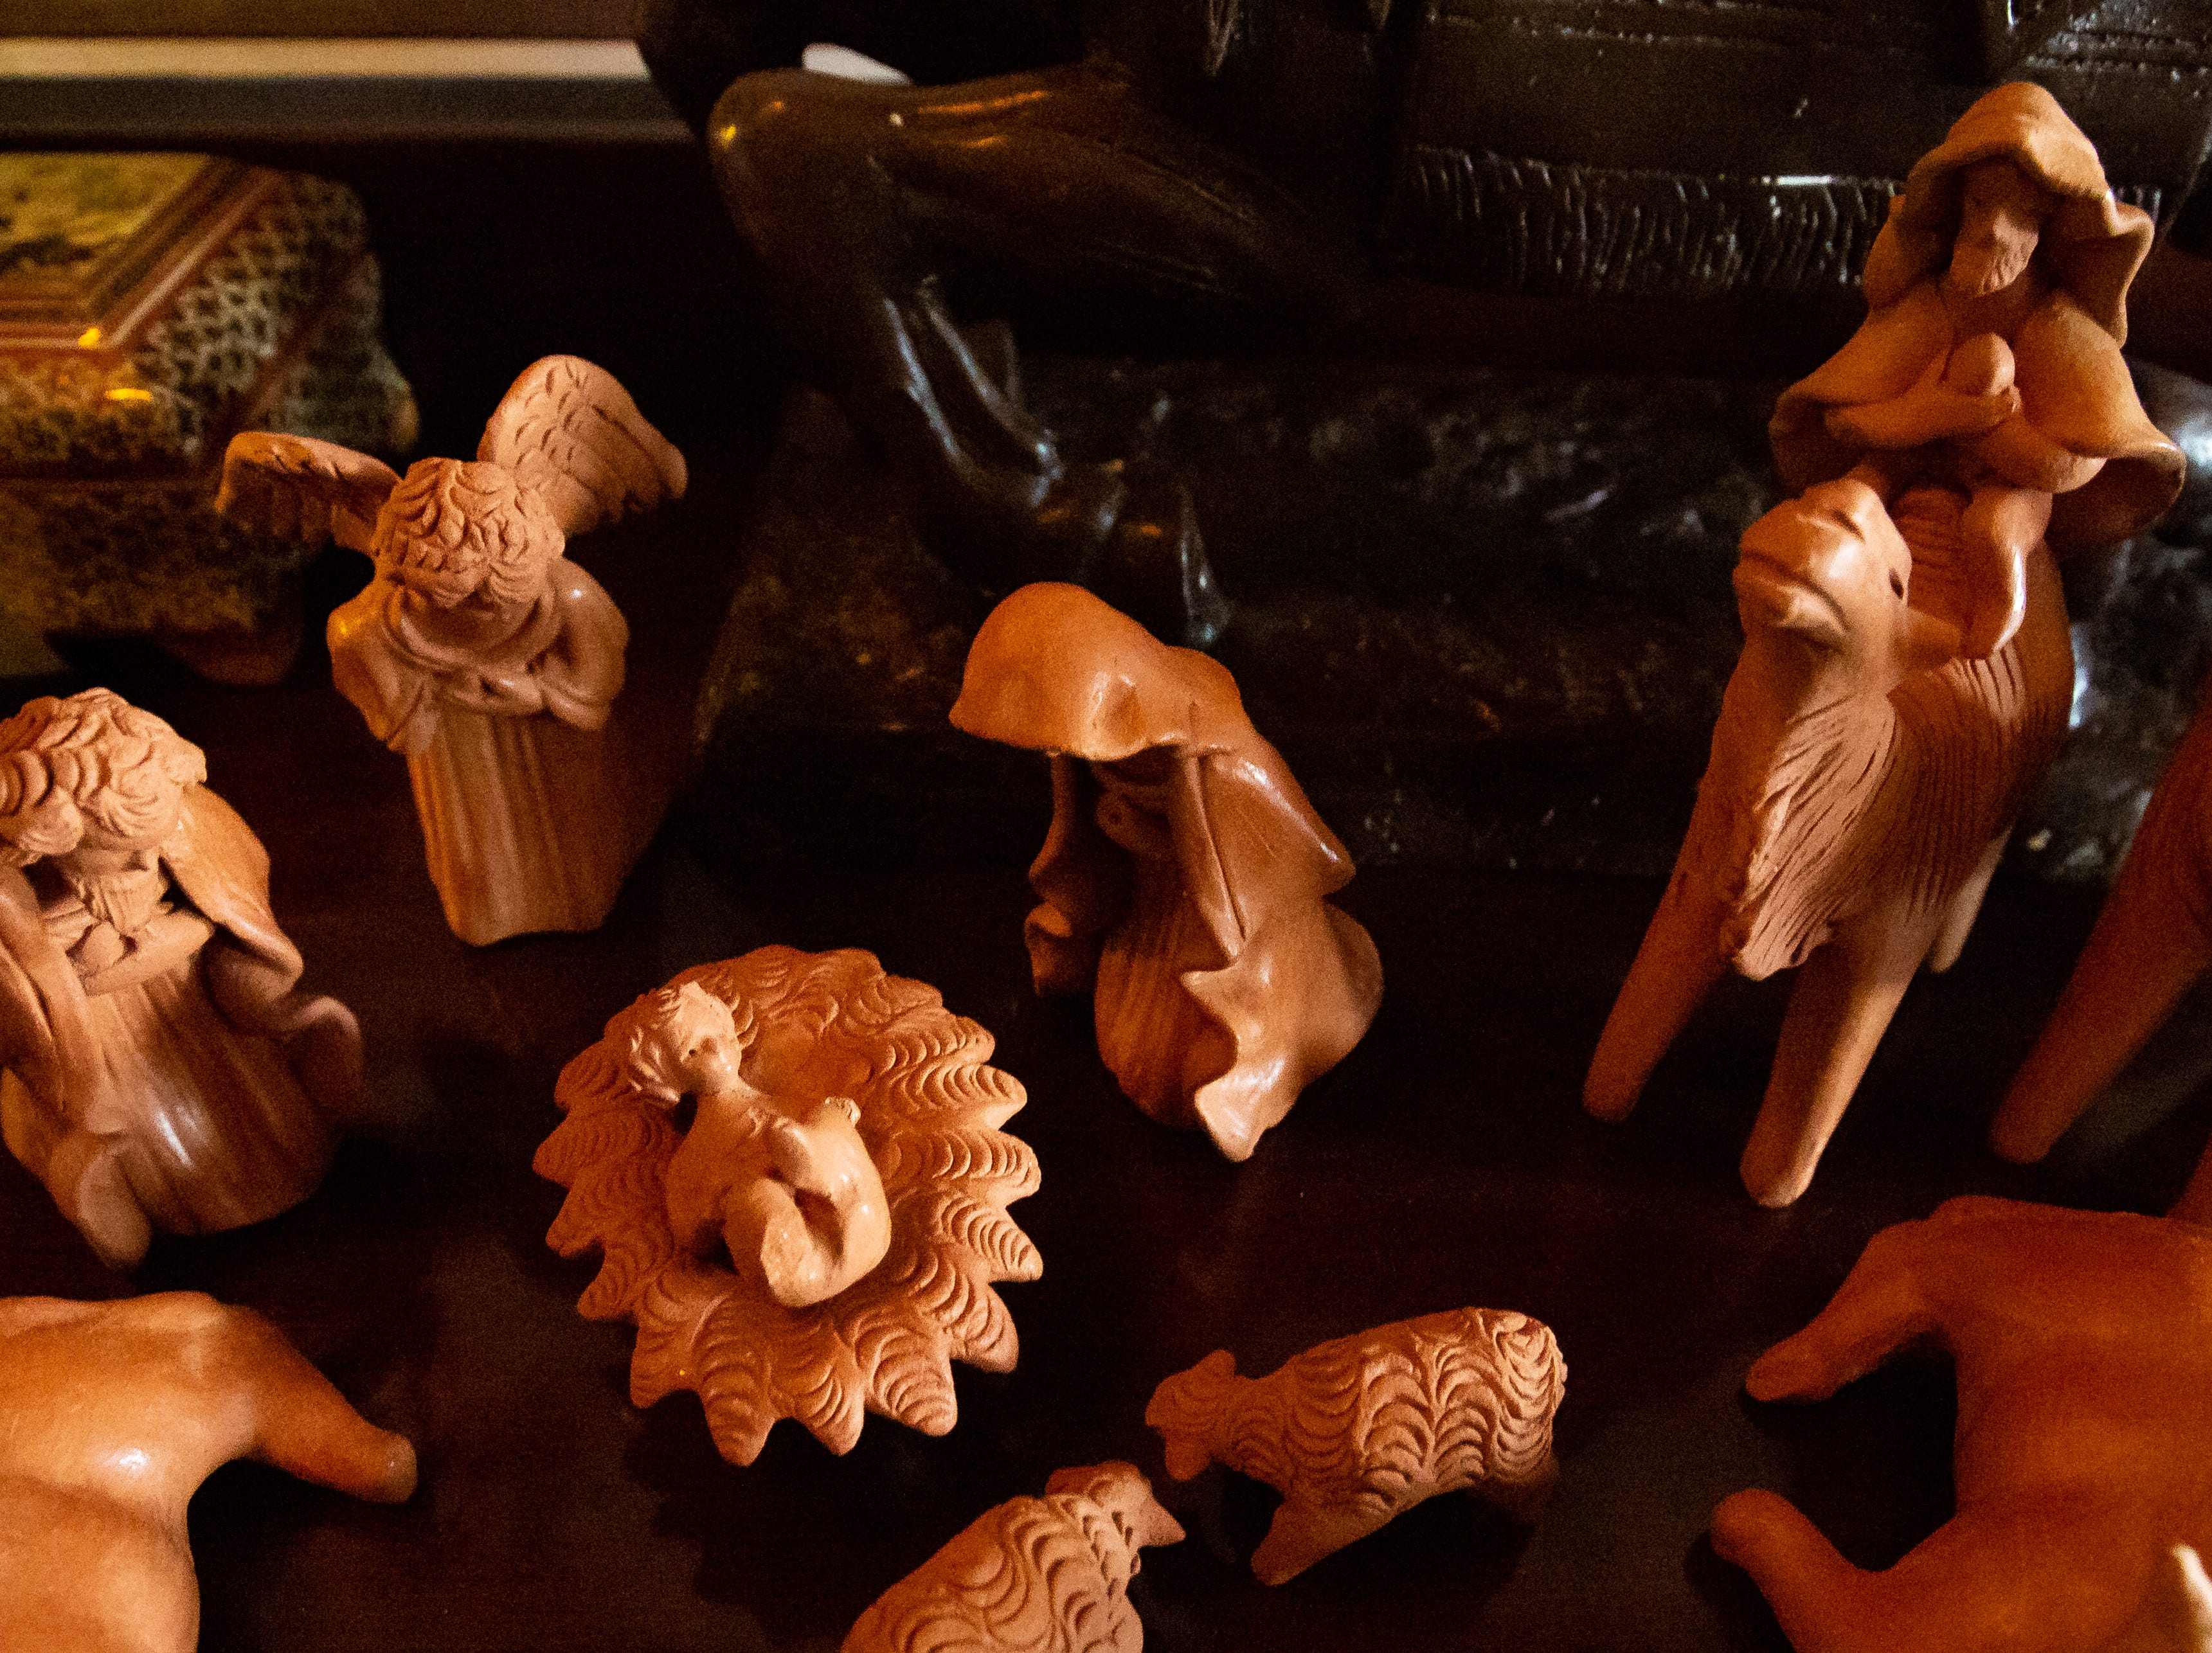 Over 175 nativity scene are on display on Sunday, December 16, 2018, during Nacimiento Open House with J. Paul Taylor at the Taylor-Barela-Reynolds-Mesilla Historic Site located in the Mesilla Plaza.